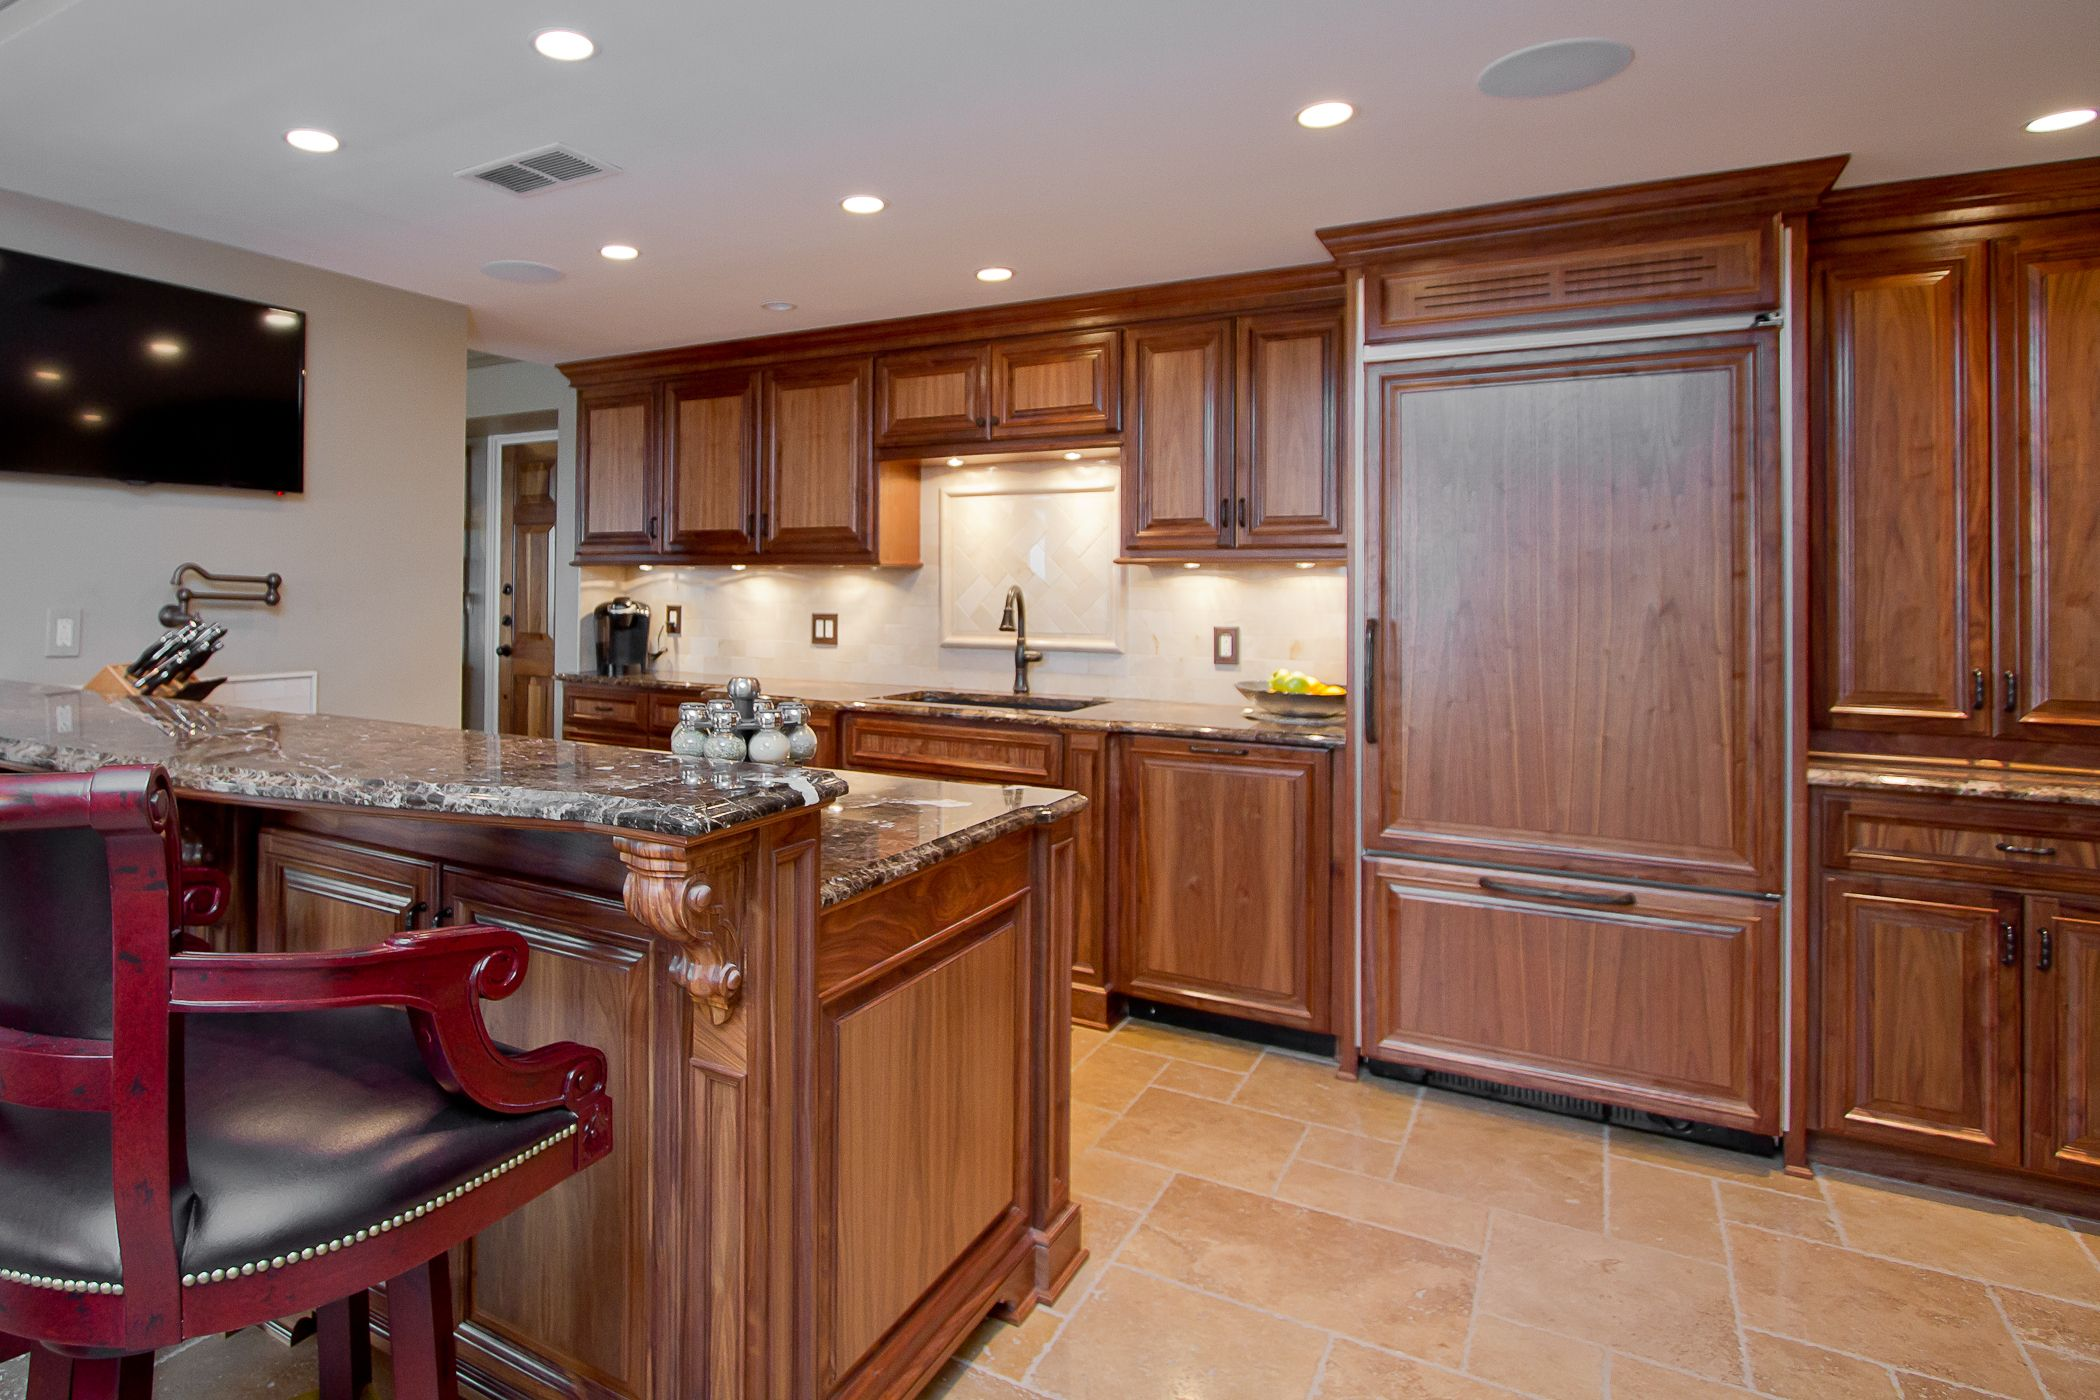 High End Walnut Kitchen Cabinetry With Book Matched Veneered Raised Panel And A Satin Kitchen Cabinets Shaker Style Kitchen Cabinets Kitchen Cabinets Pictures